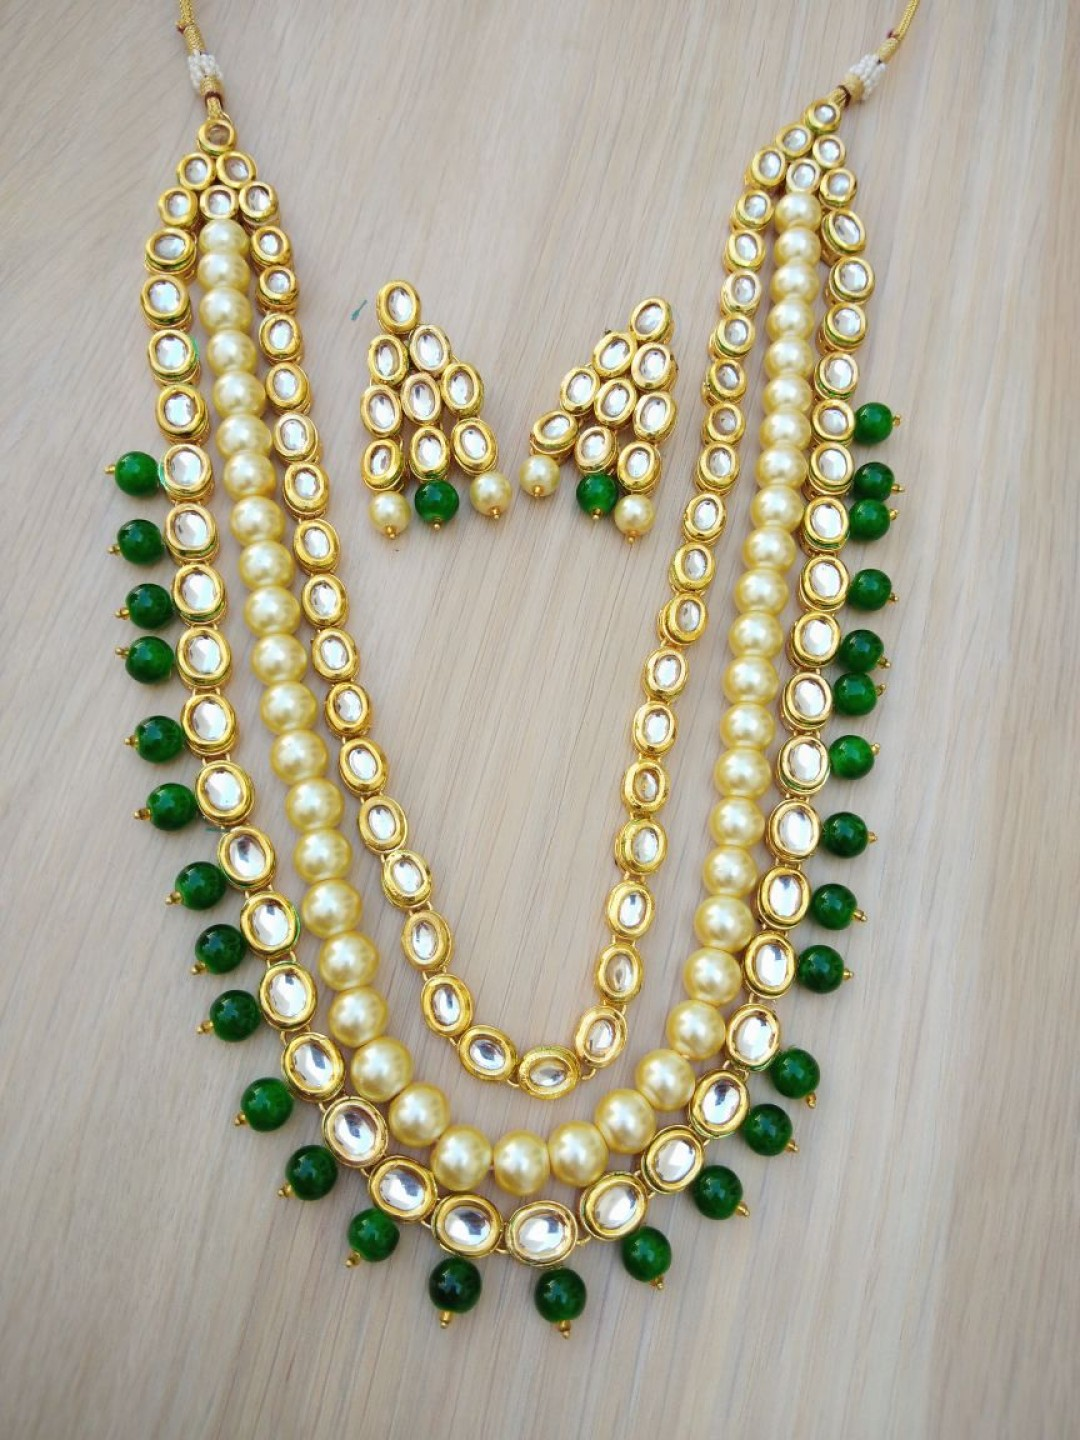 HM Necklace Set With Earrings Kundan Stone Gold Tone Green Color Beads For Woman & Girls 03